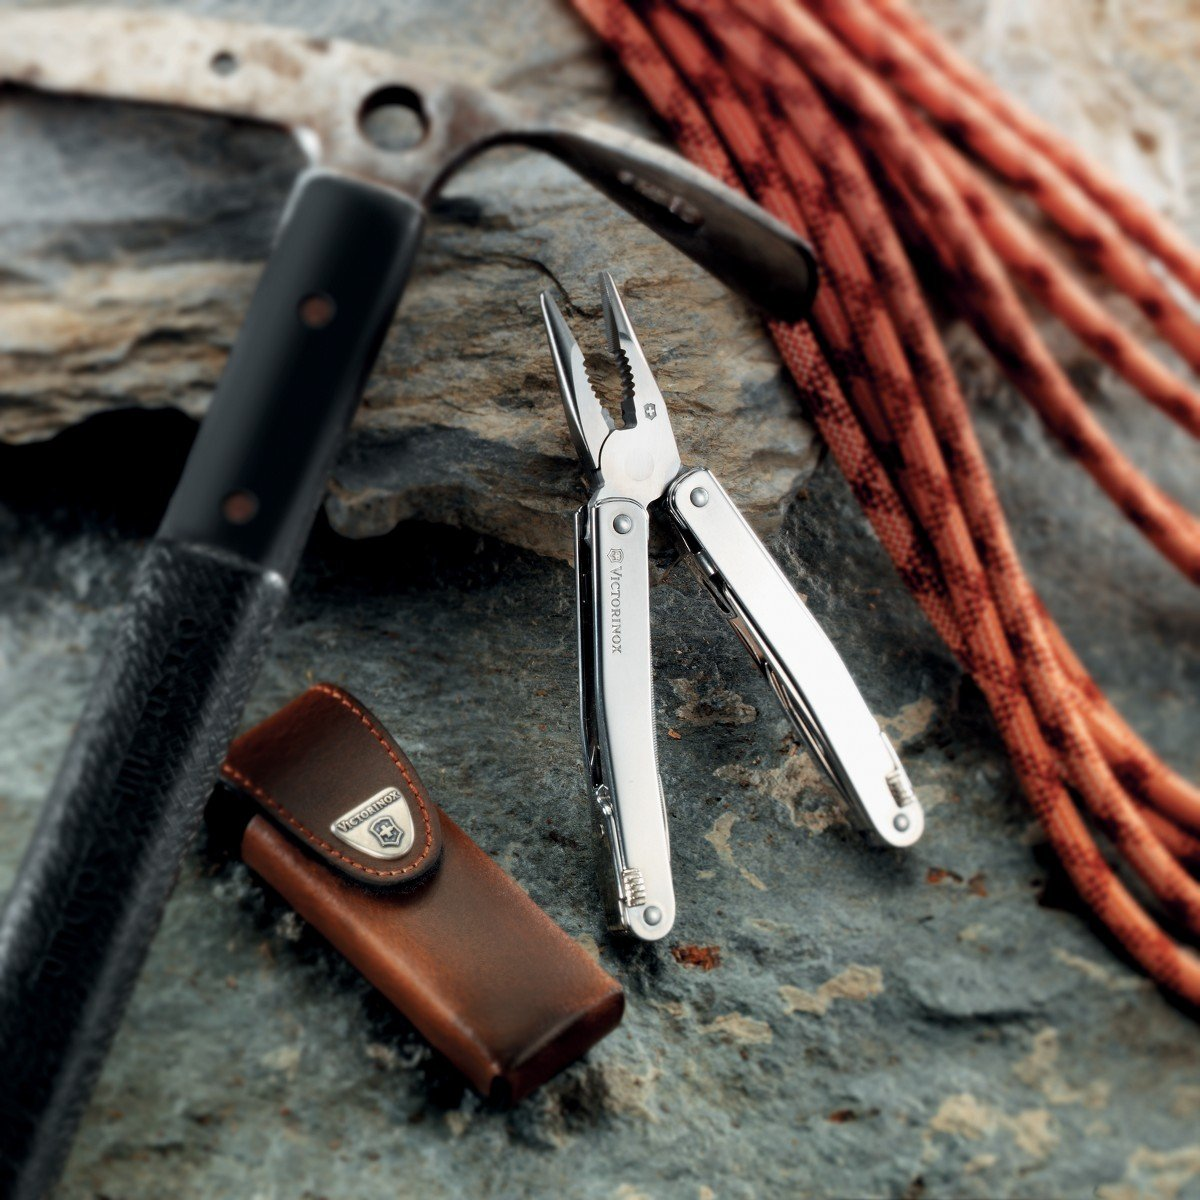 Victorinox Swiss Army SwissTool Spirit Multi-Tool, Includes Leather Pouch by Victorinox (Image #4)